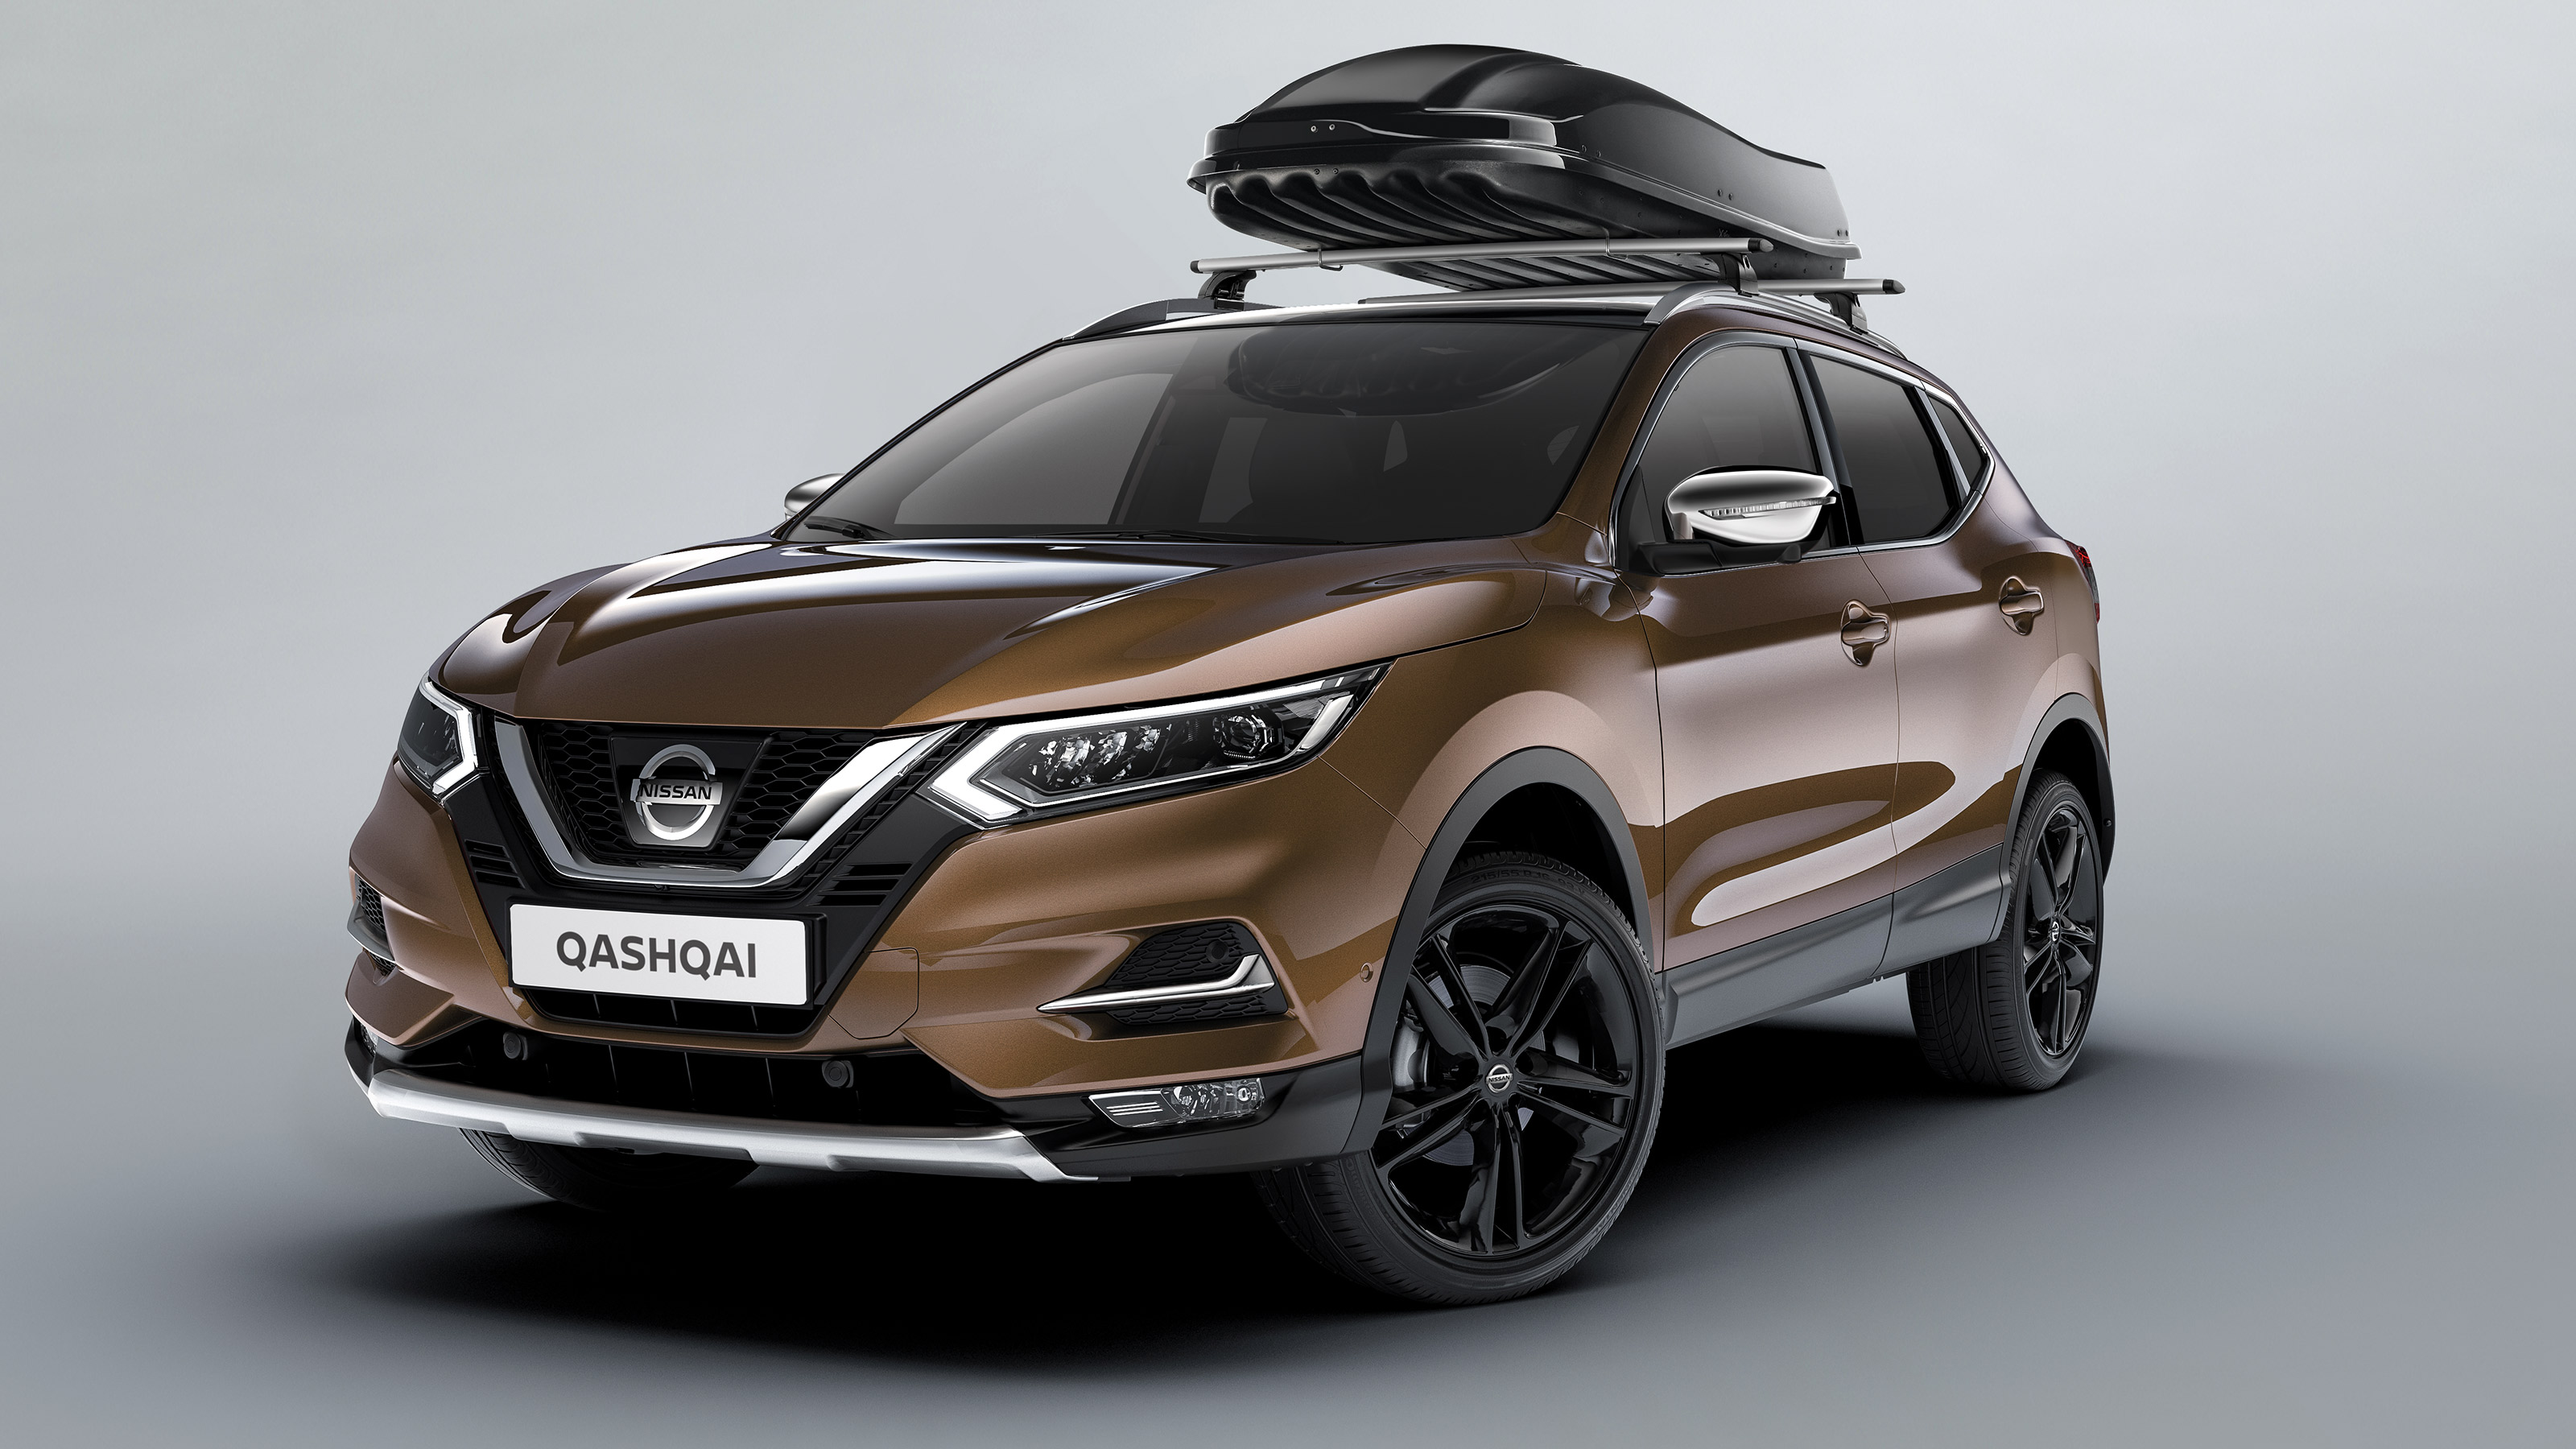 nissan qashqai suv urbain technologiquement avanc nissan. Black Bedroom Furniture Sets. Home Design Ideas